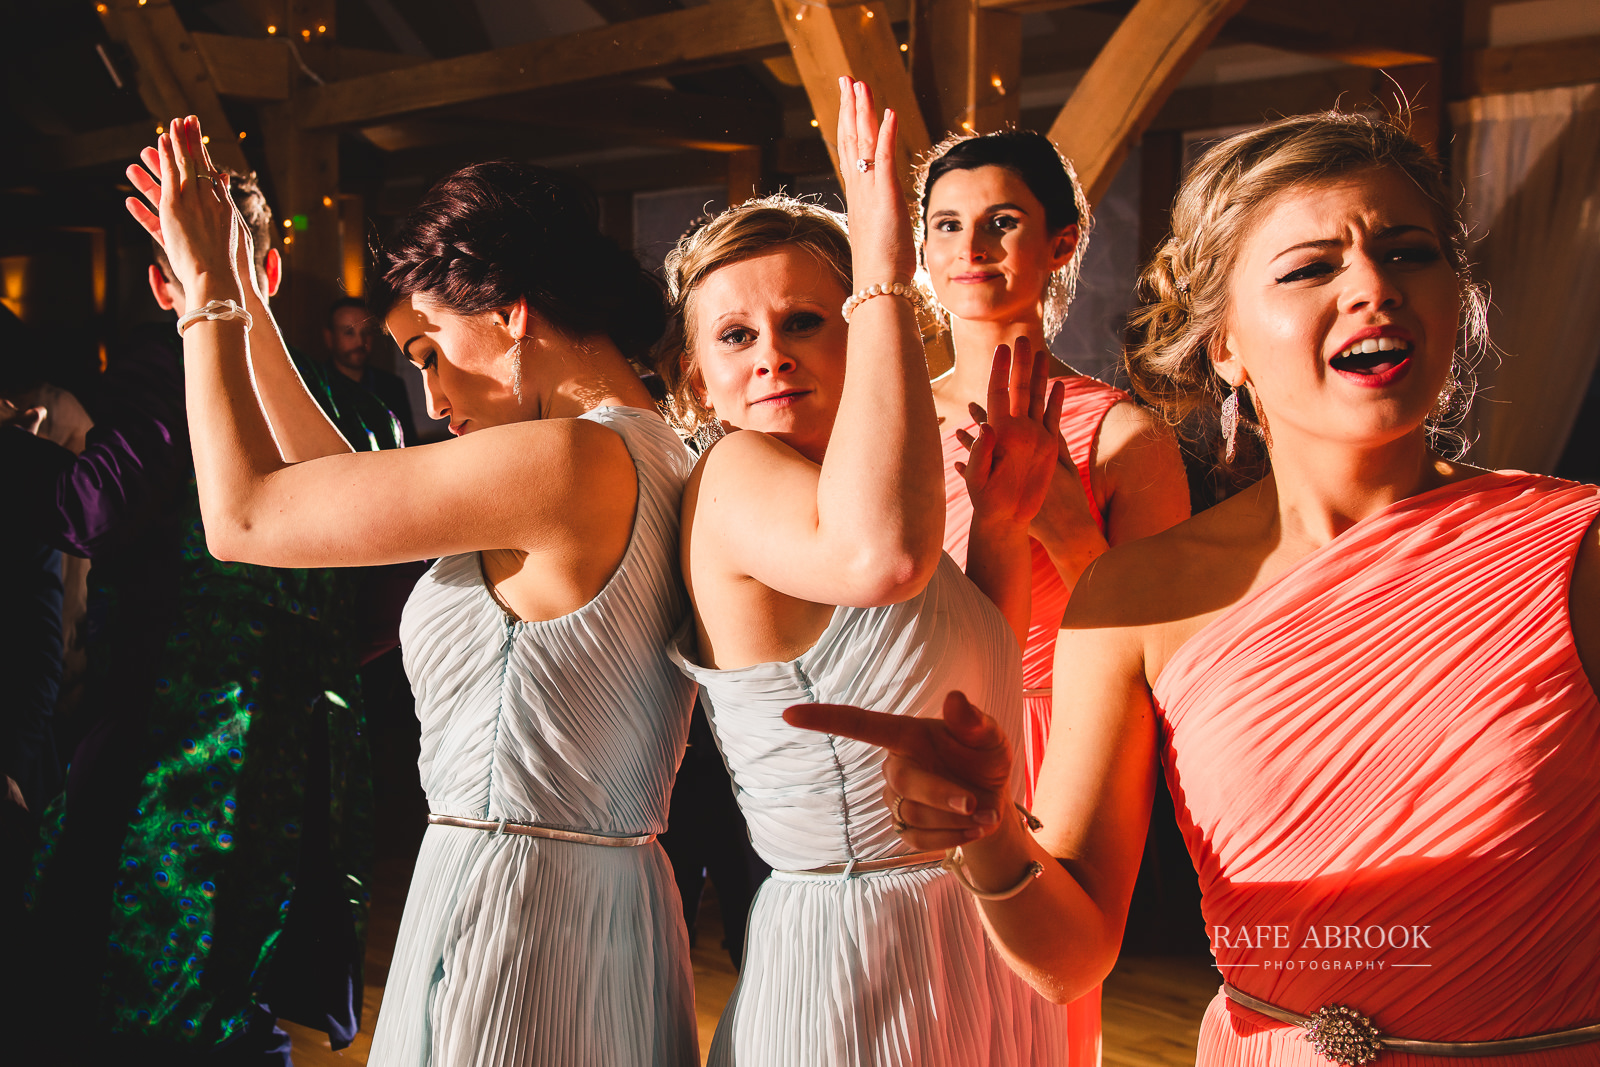 bassmead manor barns wedding st neots cambridgeshire hertfordshire wedding photographer rafe abrook-1761.jpg